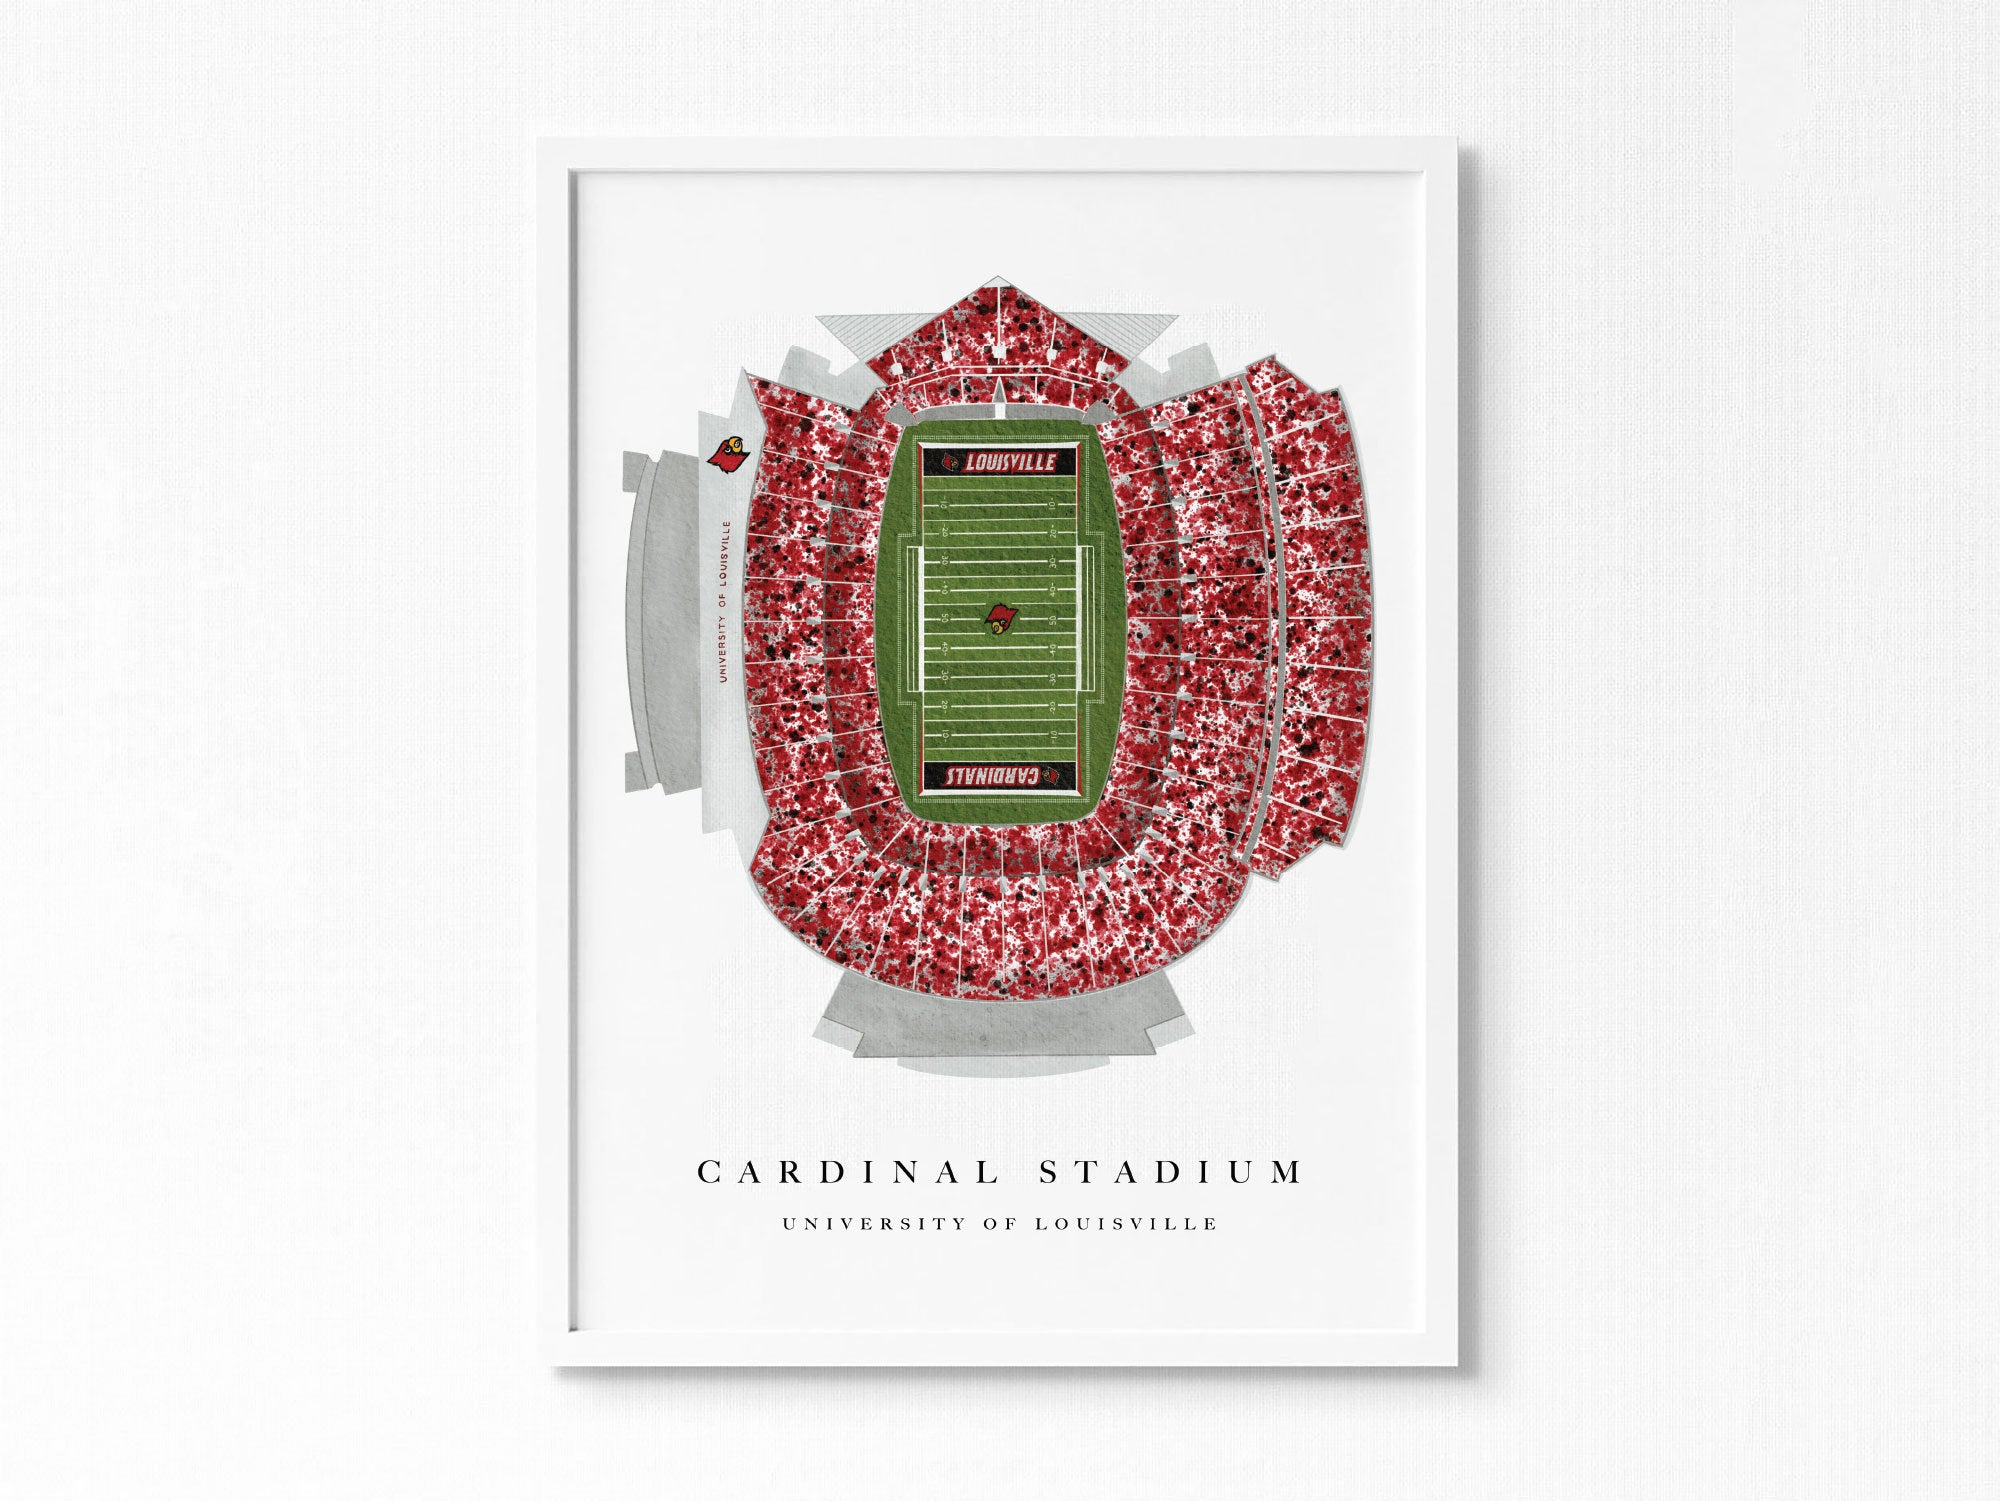 University of Louisville | Cardinal Stadium